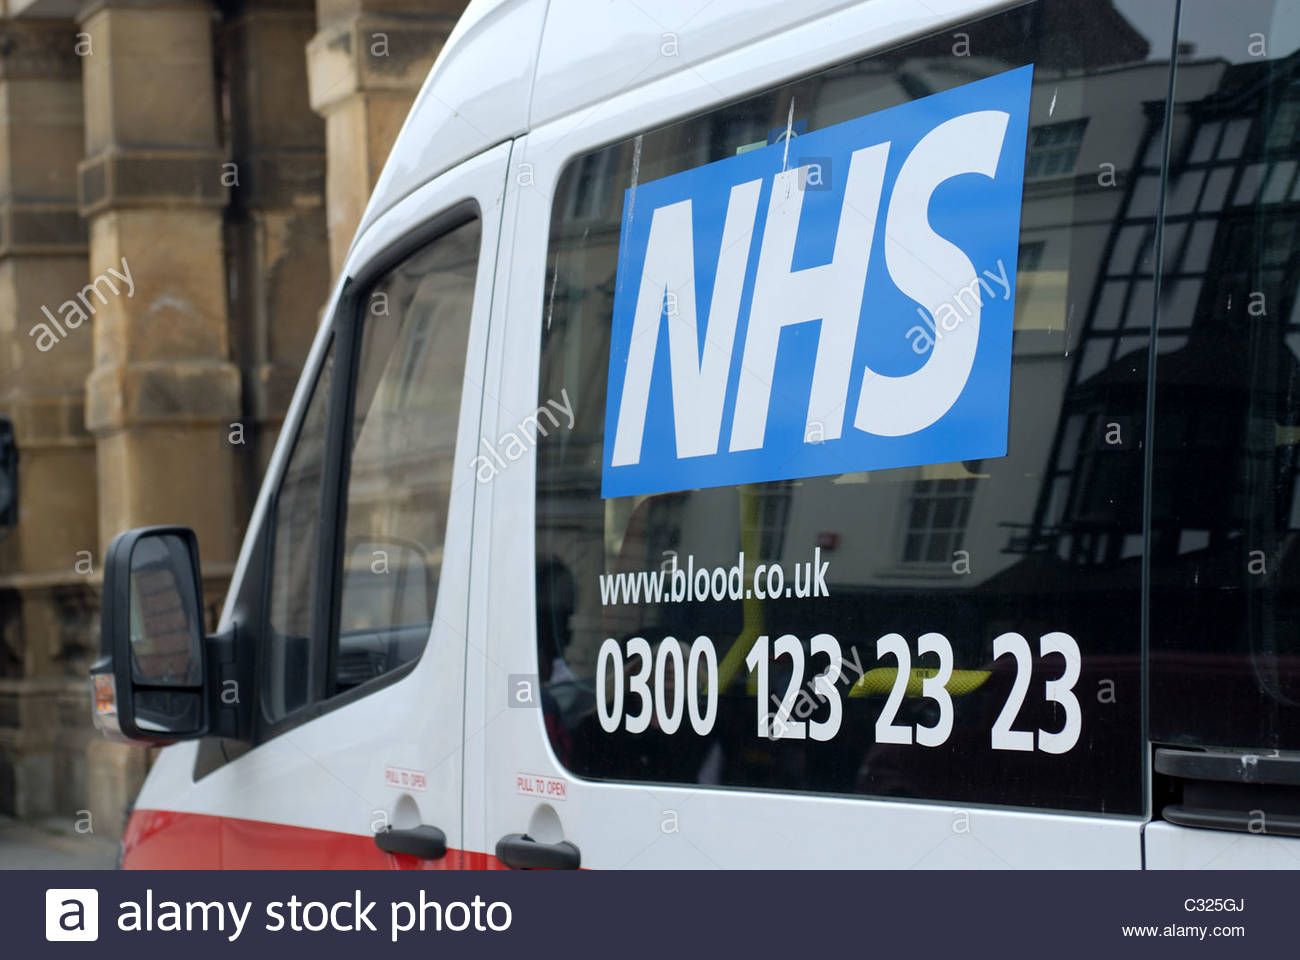 Leamington Spa UK NHS Blood donation vehicle - Stock Image